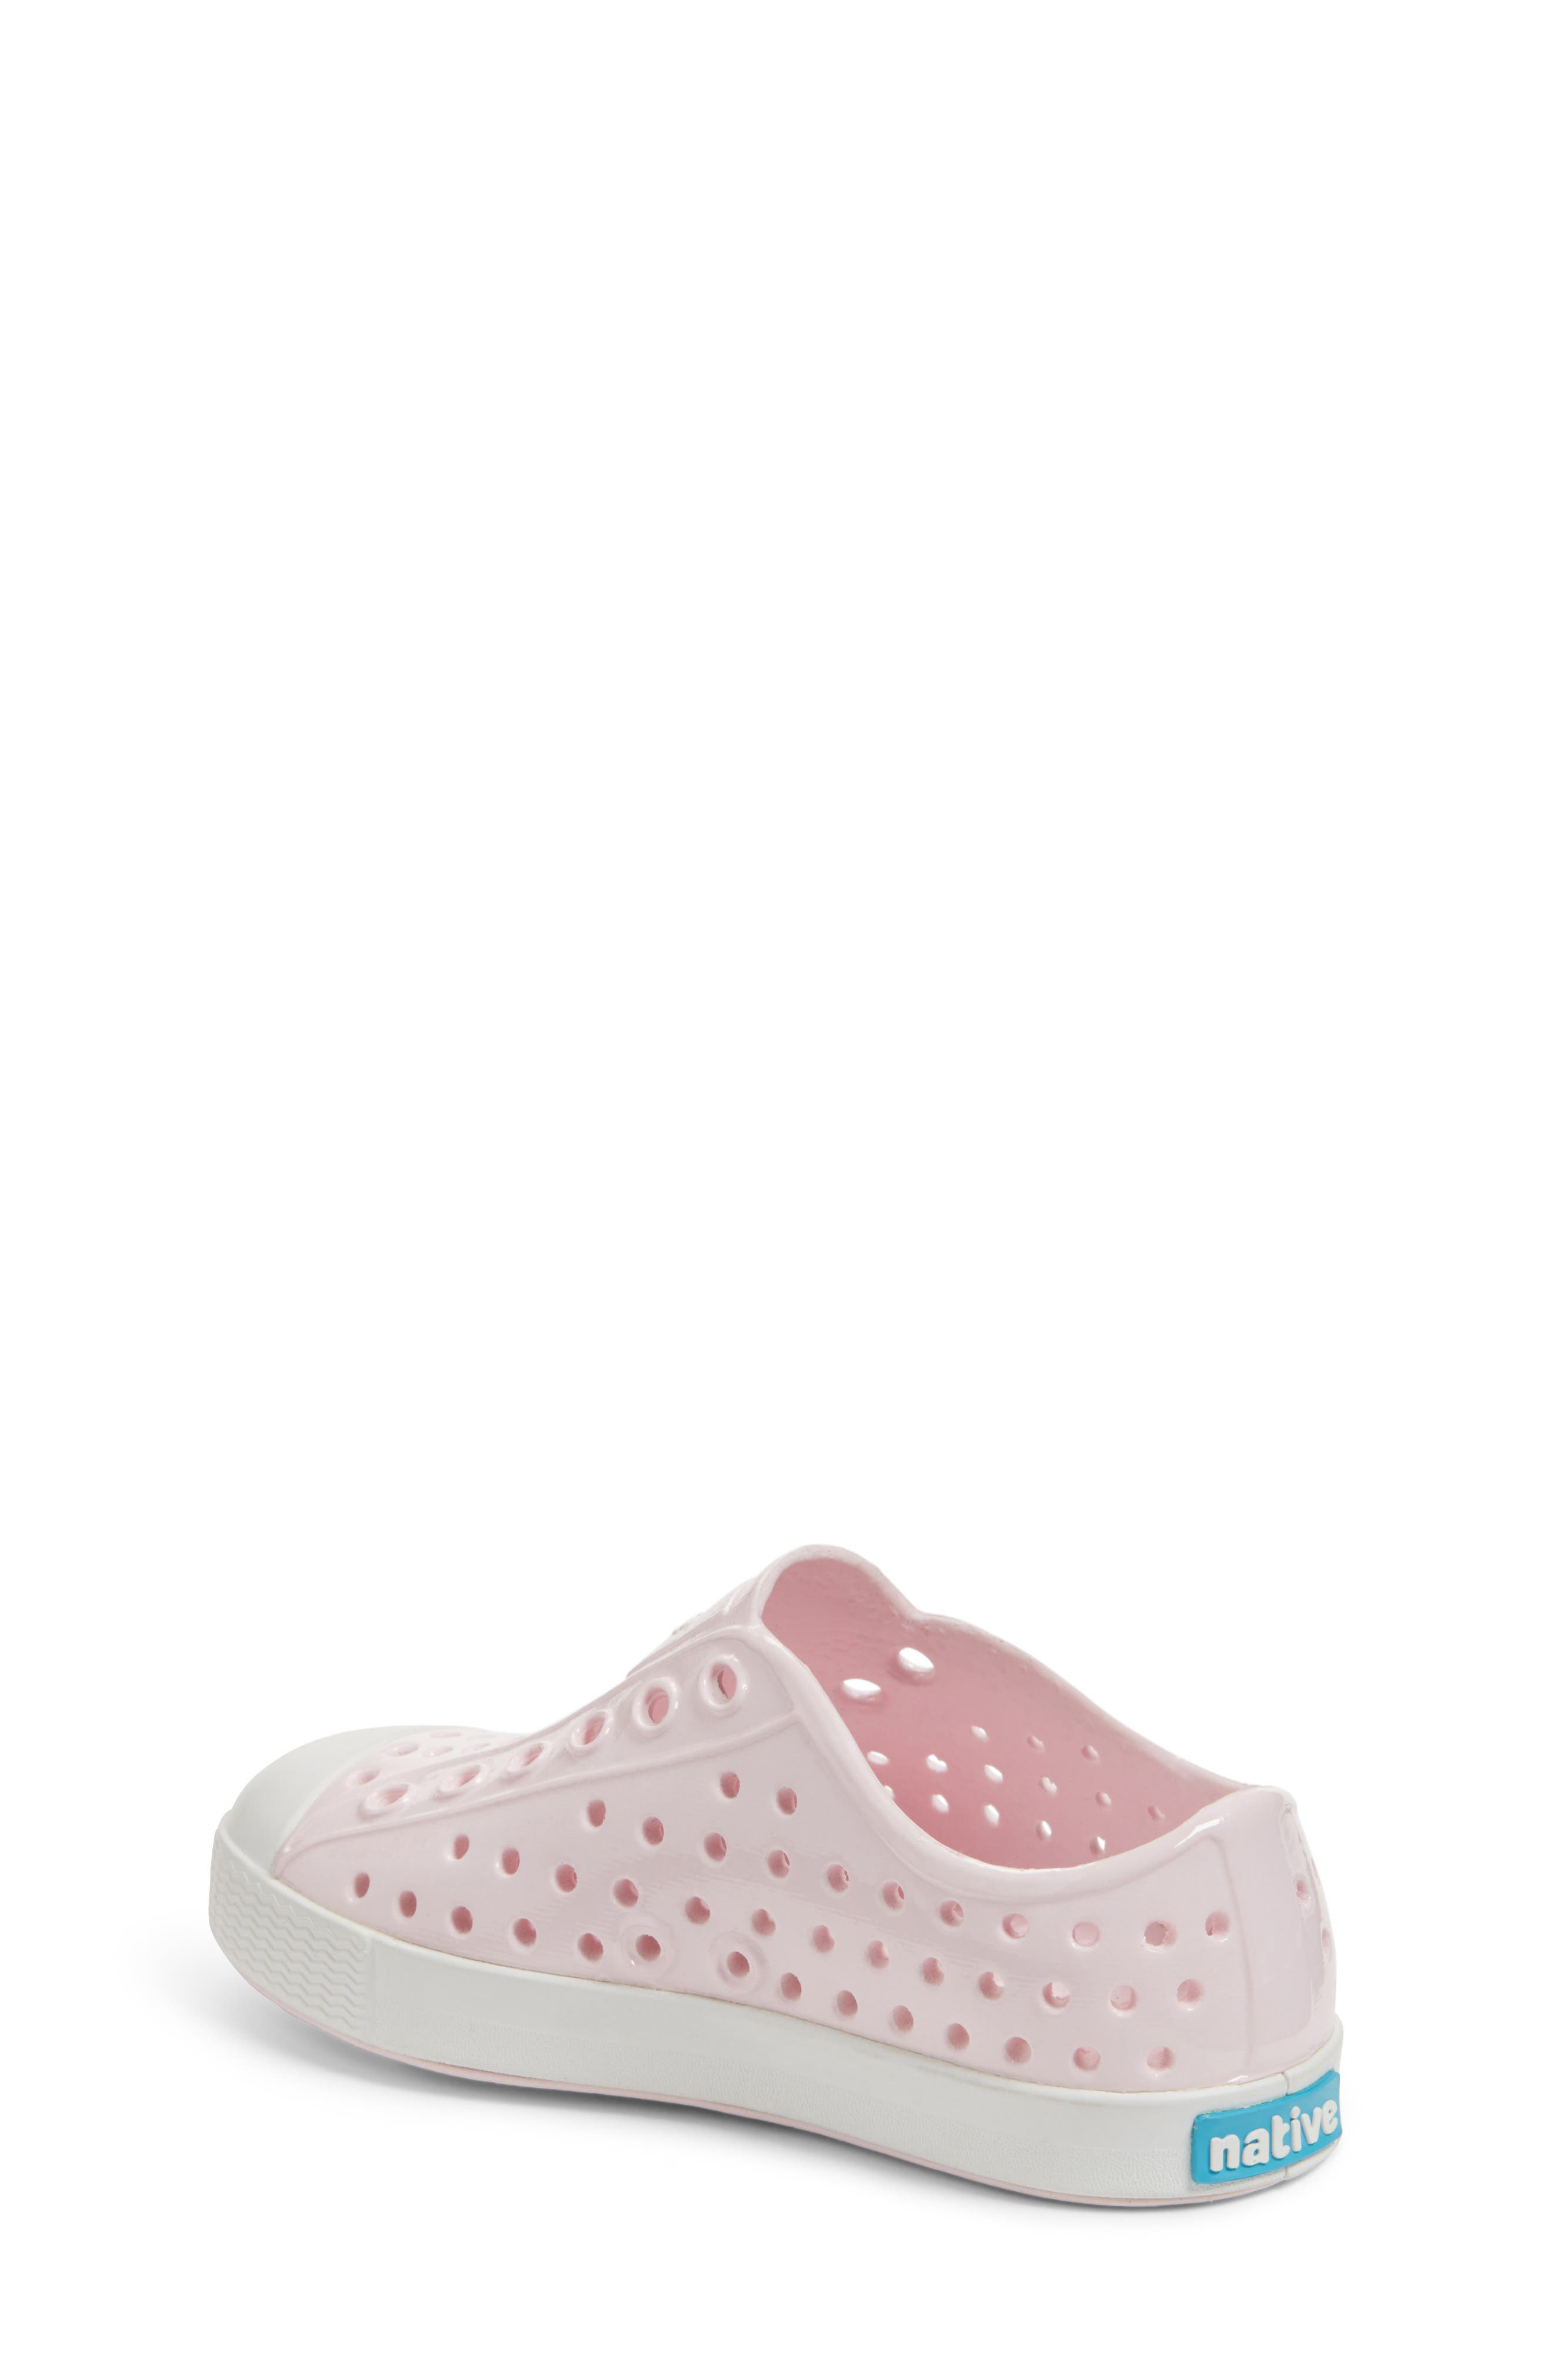 Alternate Image 3  - Native Shoes Jefferson Glossy Slip-On Sneaker (Baby, Walker, Toddler & Little Kid)